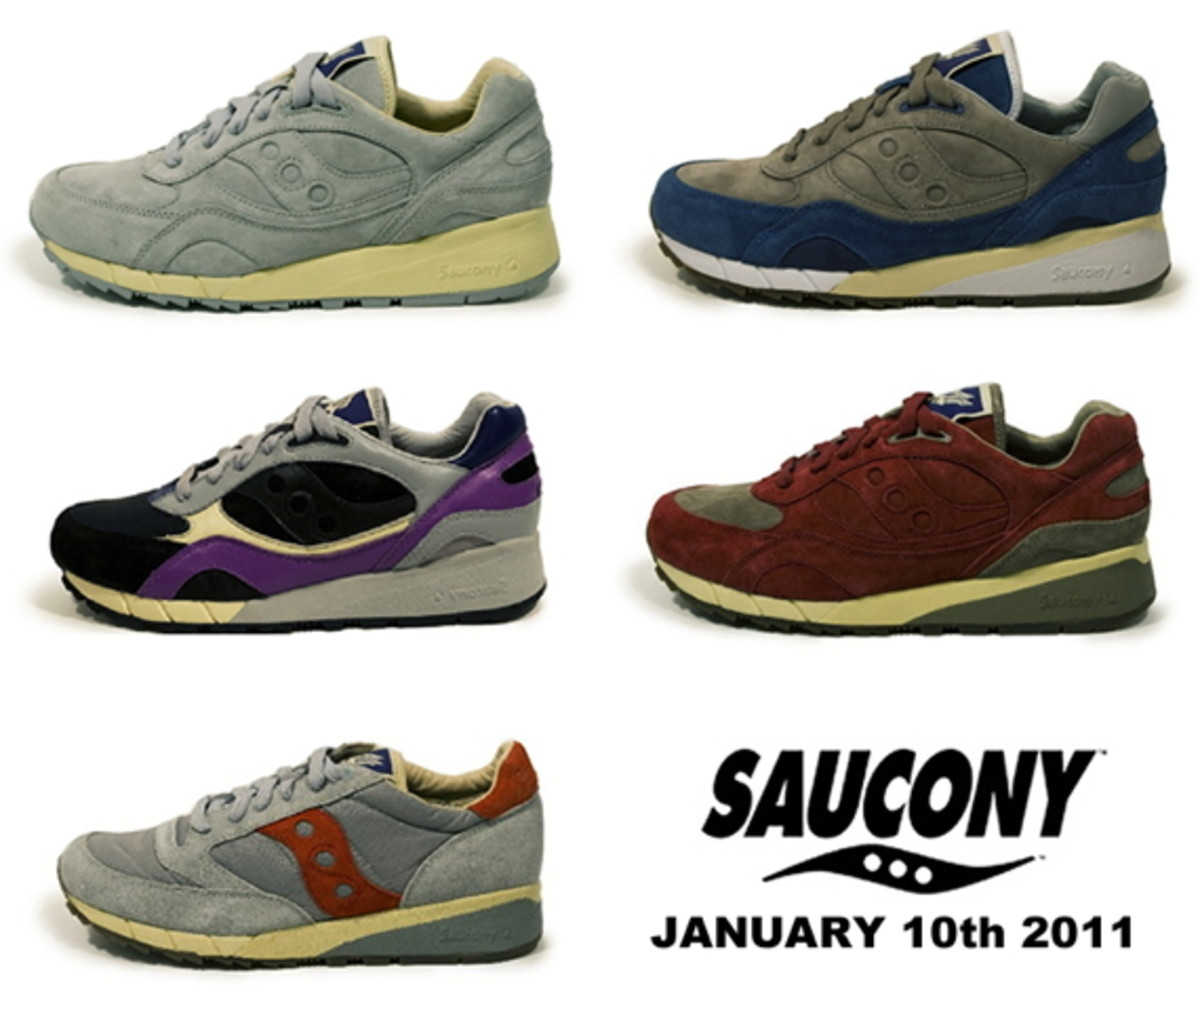 saucony-x-bodega-spring-2011-collection-0